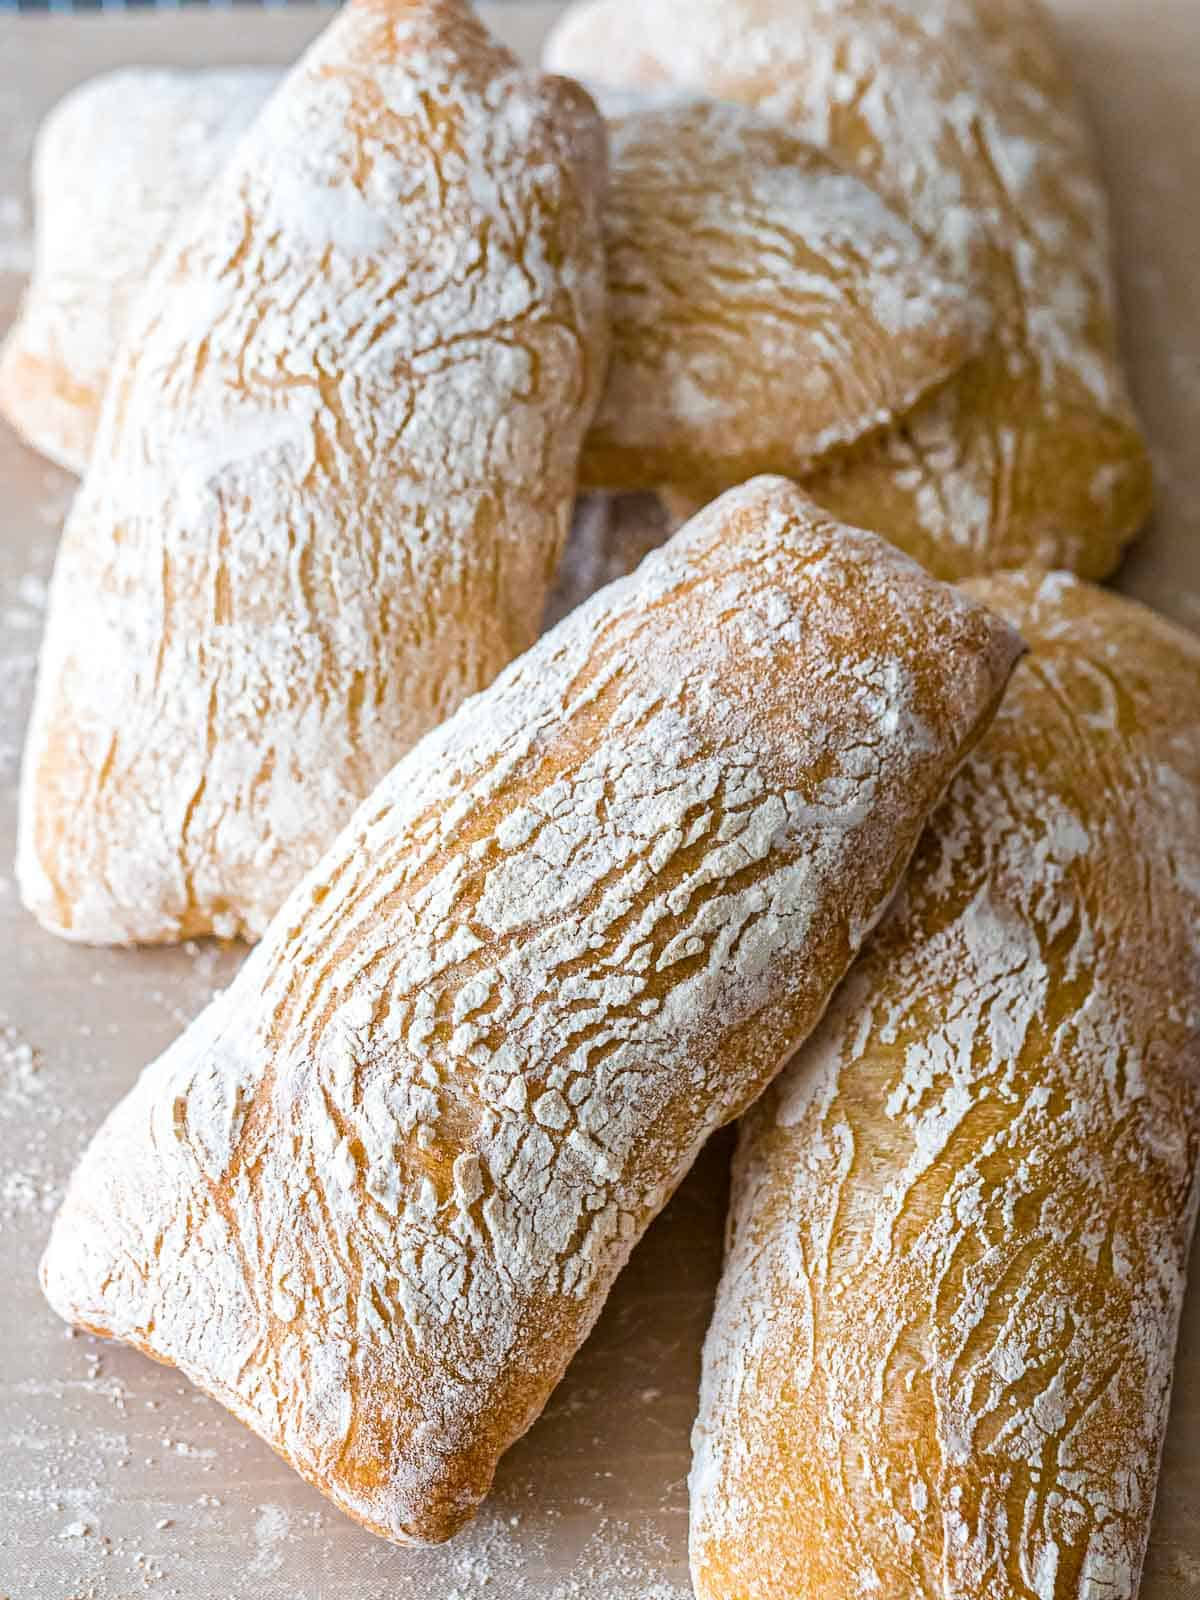 Several ciabatta bread loaves with a golden brown, crispy crust covered in flour.